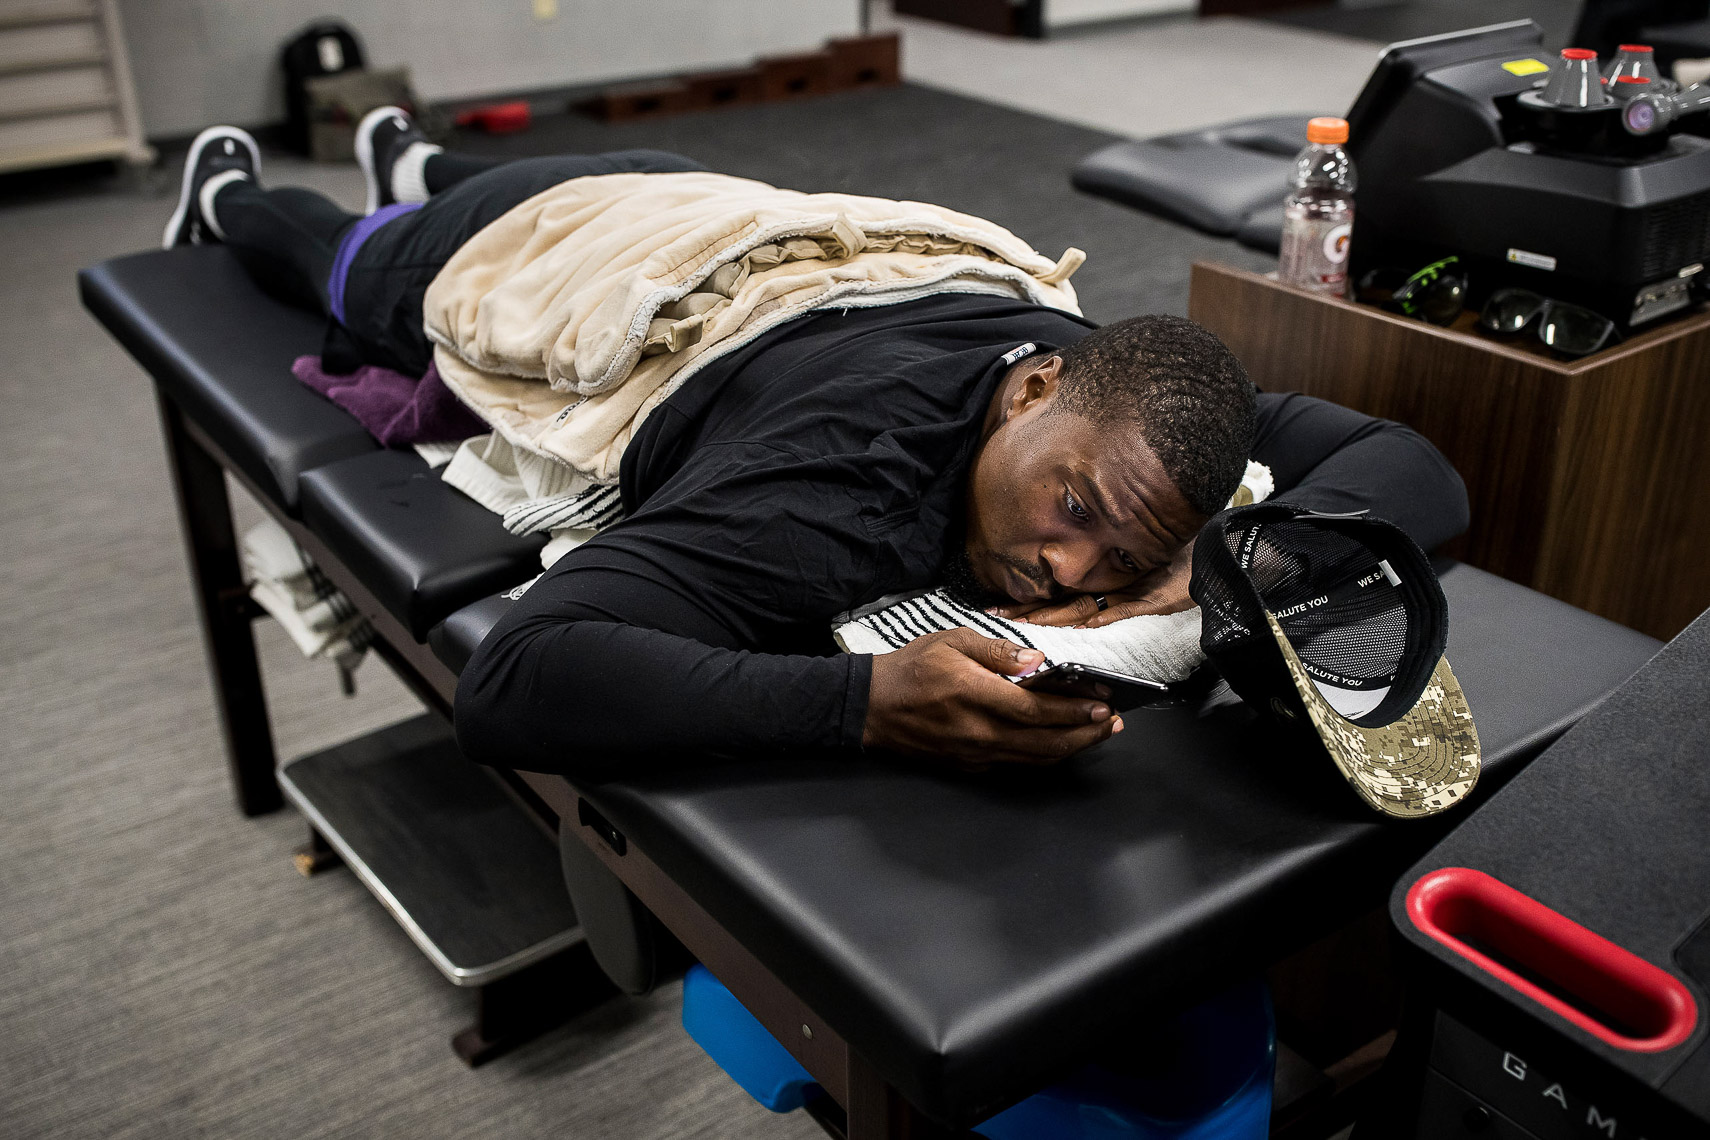 A day in the life of an NFL player documentary story by Baltimore photojournalist Shawn Hubbard